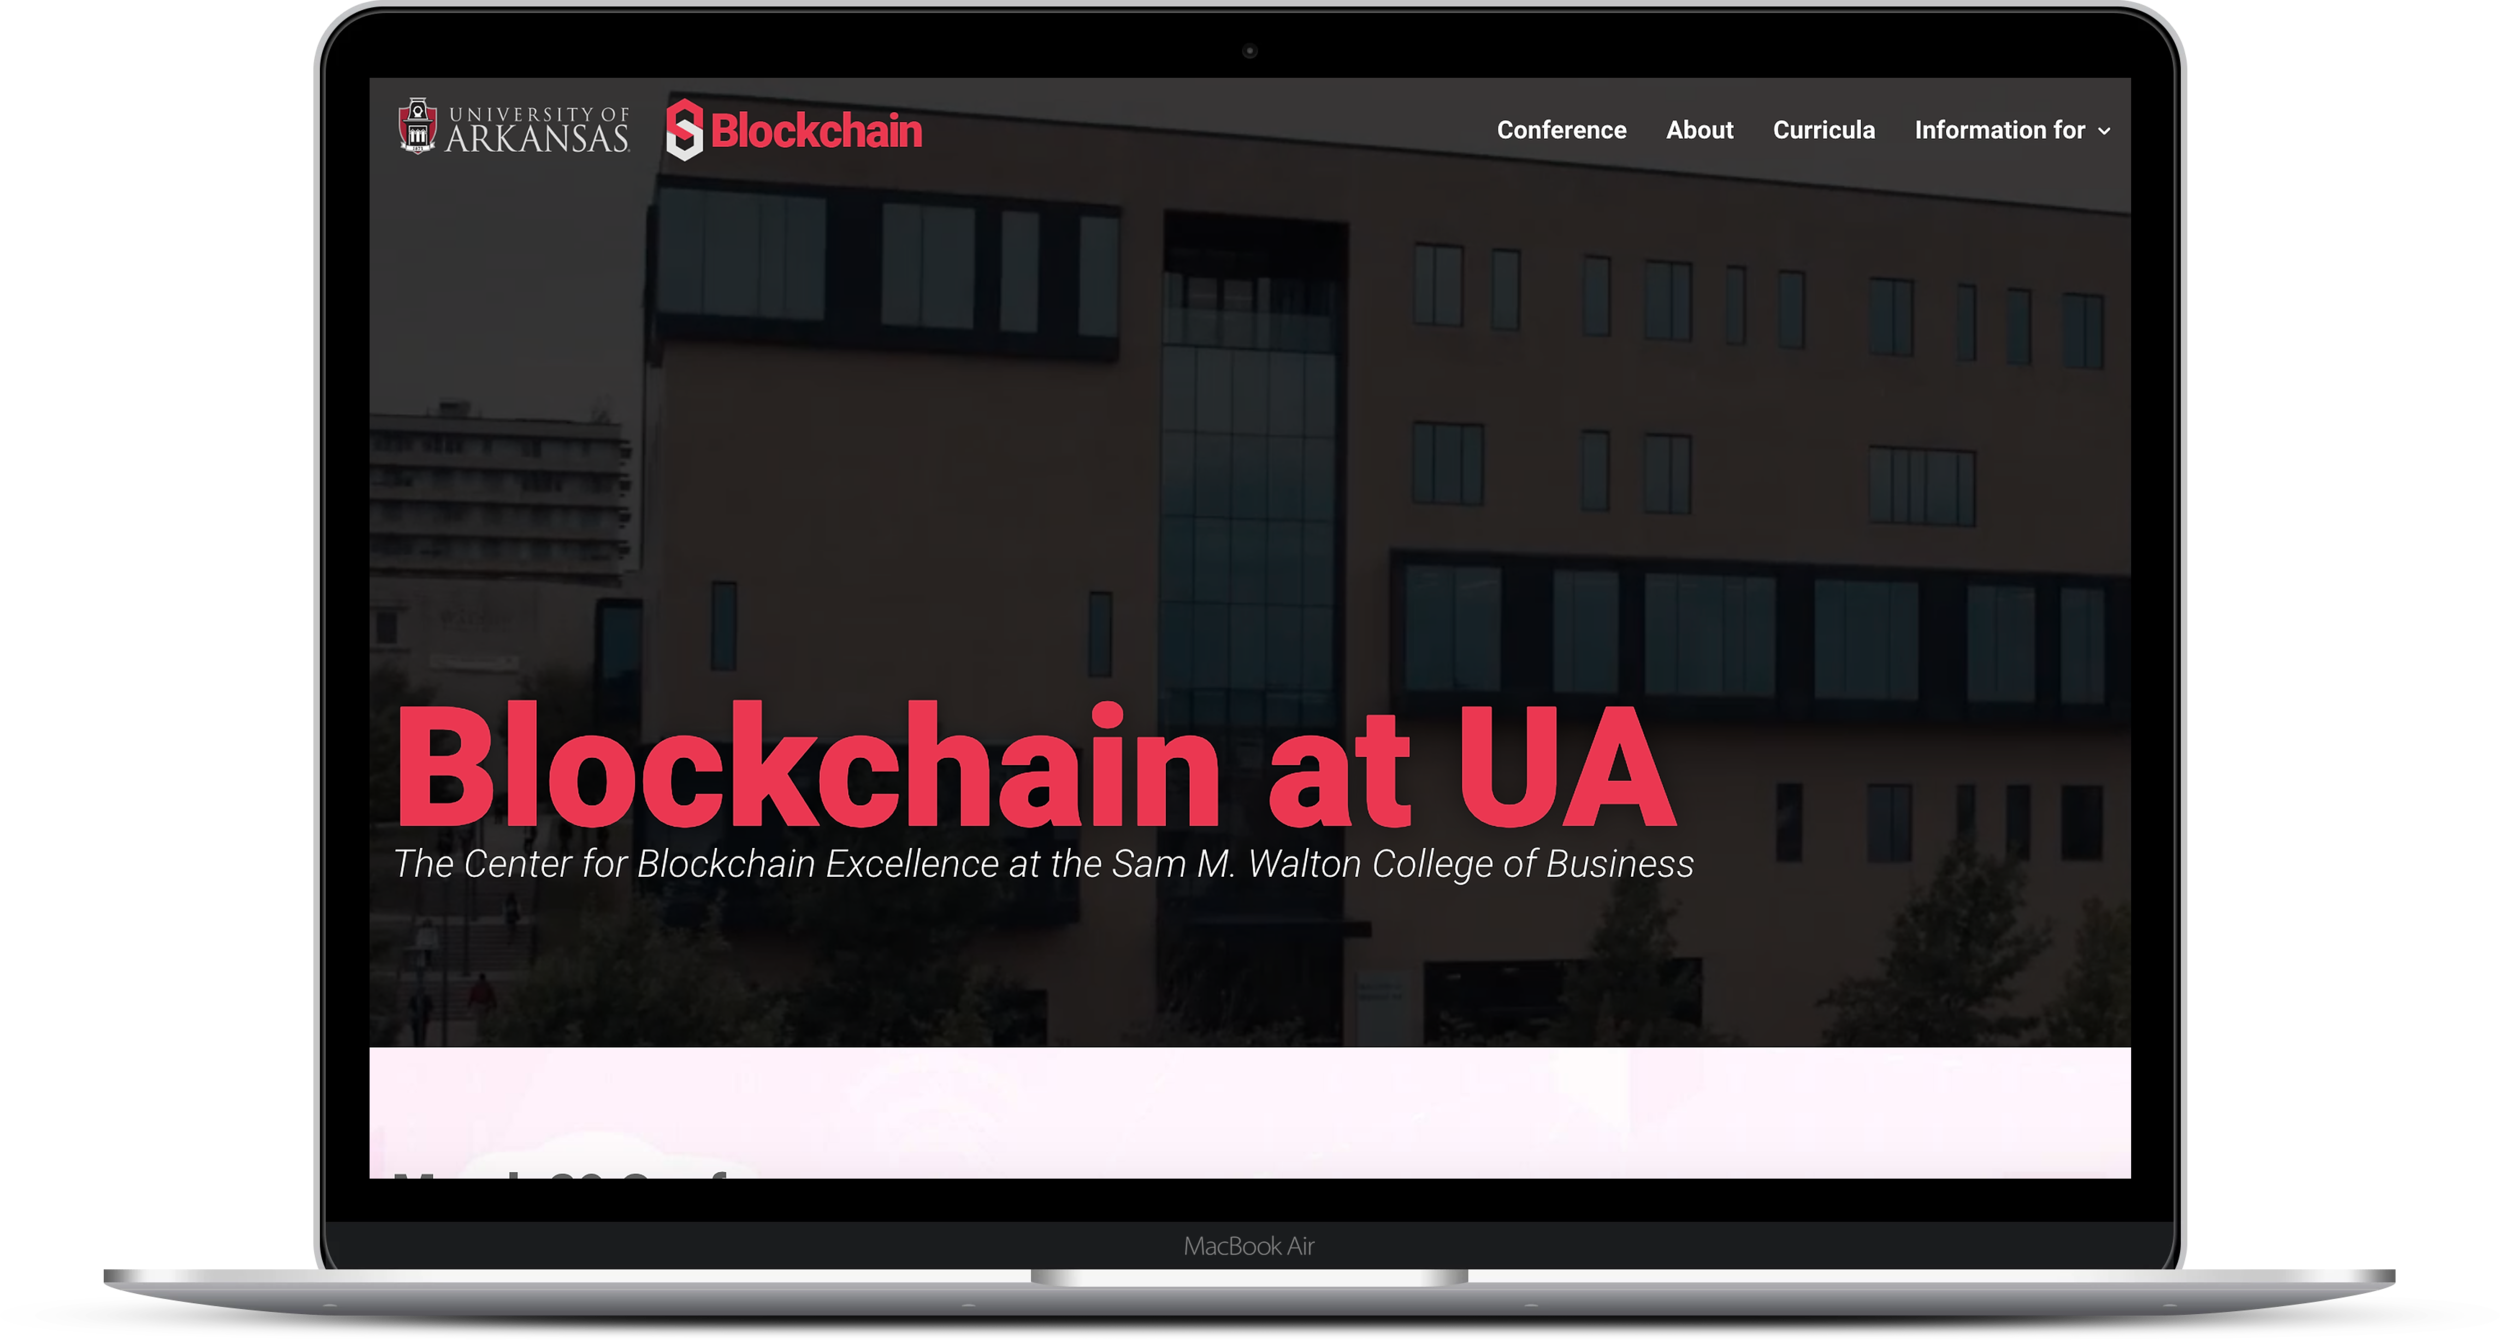 Blockchain Center of Excellence - The Sam M. Walton College of Business at the University of Arkansas is home to a thriving center dedicated to Blockchain. Prior to their 2019 conference, I was tasked with designing and developing a new center website for the Blockchain Center of Excellence. Containing conference information, resources on Blockchain and much more, the site provides a permanent home for the center. Designed and developed under supervision of Drew StephensVISIT THE SITE